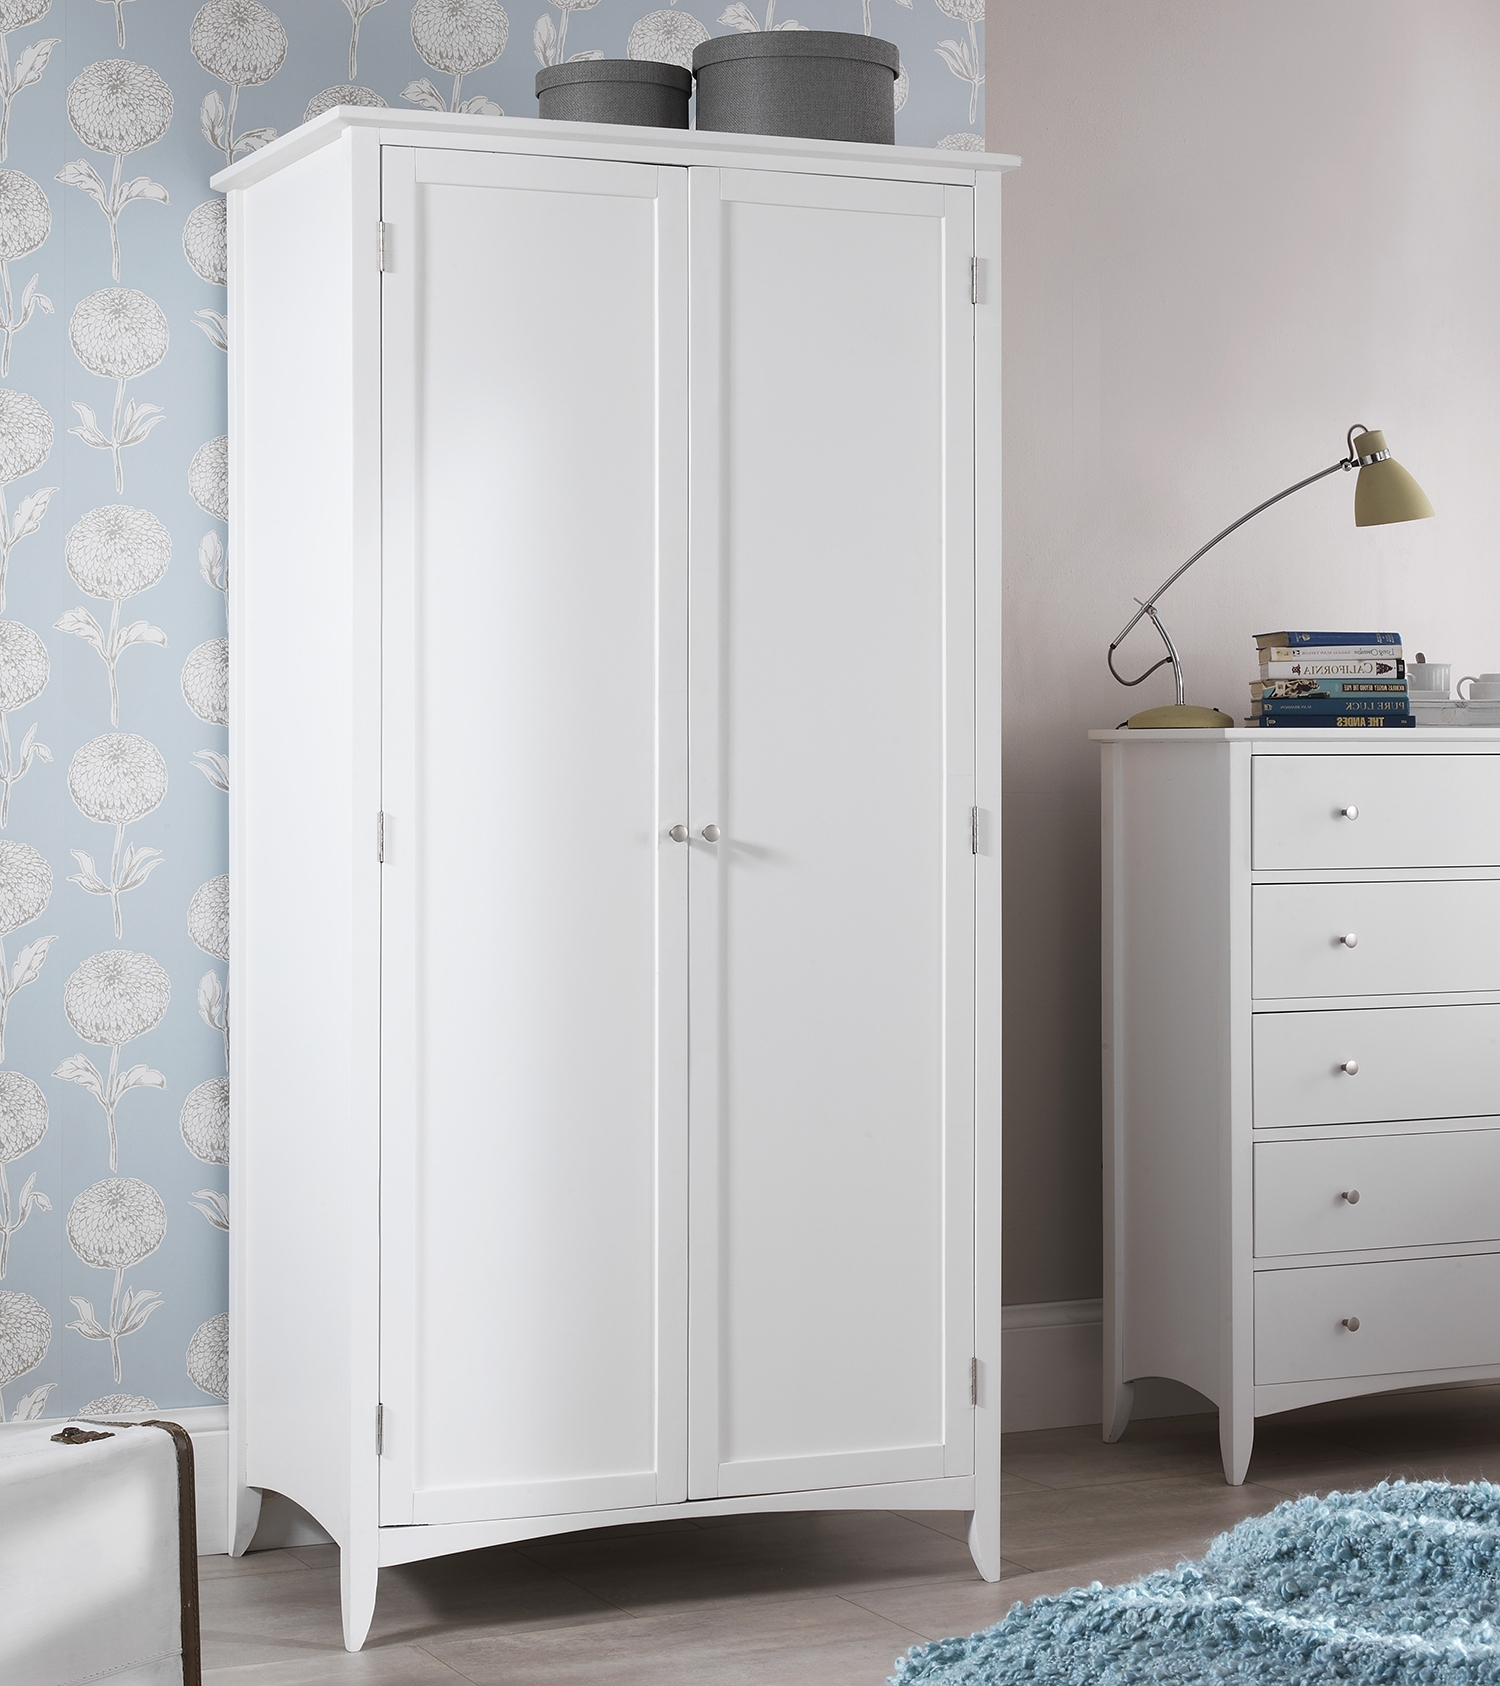 Large White Wardrobes With Drawers Intended For Popular Edward Hopper White Double Wardrobe, Quality Large Wardrobe, Shelf (View 7 of 15)